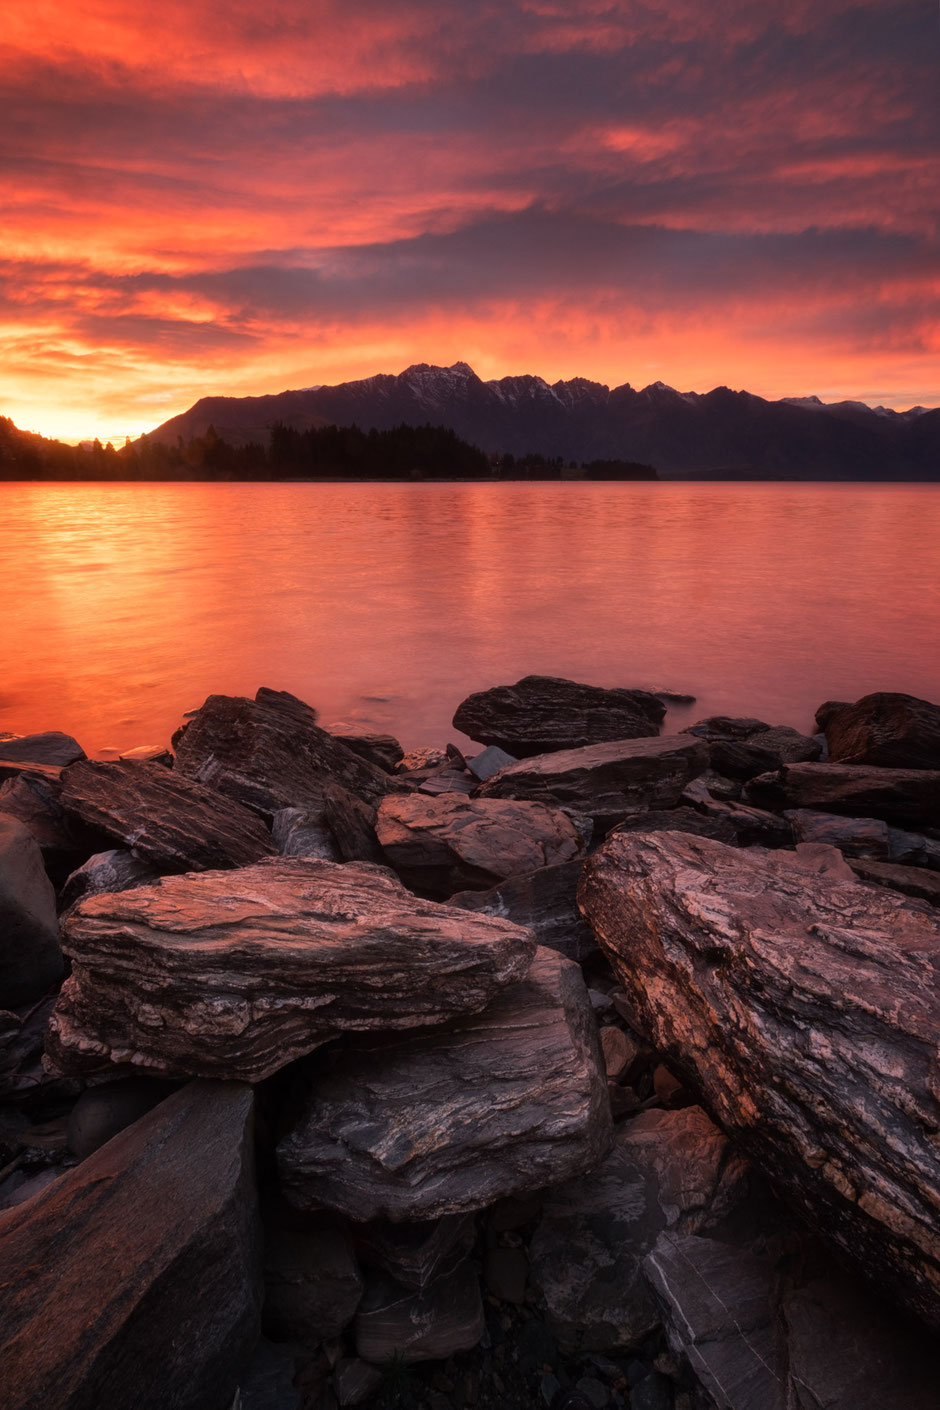 Sunrise over the remarkables, Queenstown